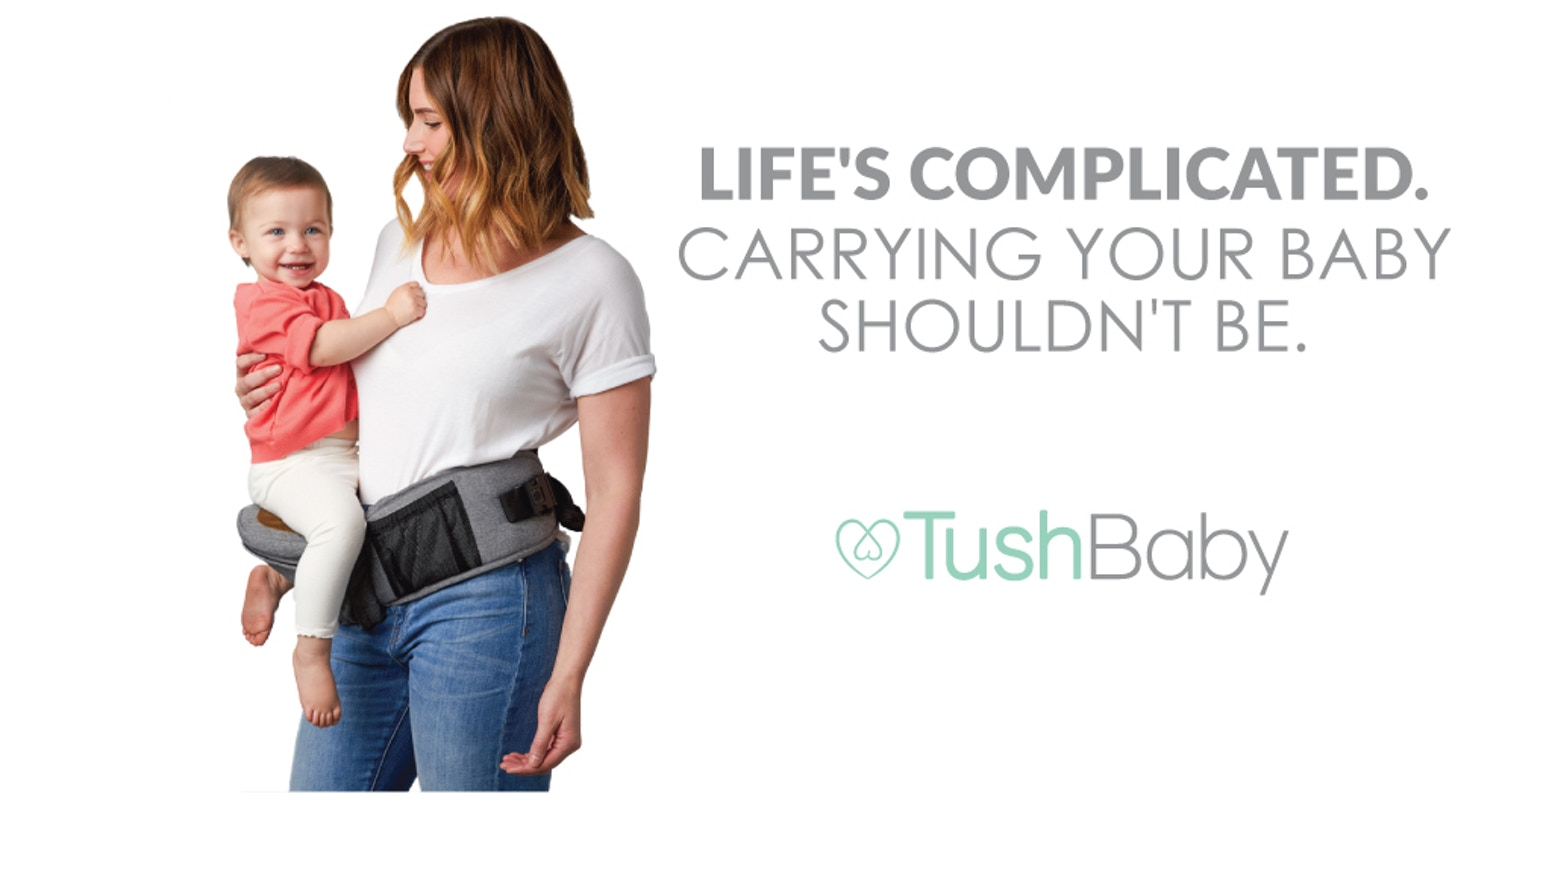 Tushbaby Carry Your Kid Stash Your Stuff Save Your Back By Tammy